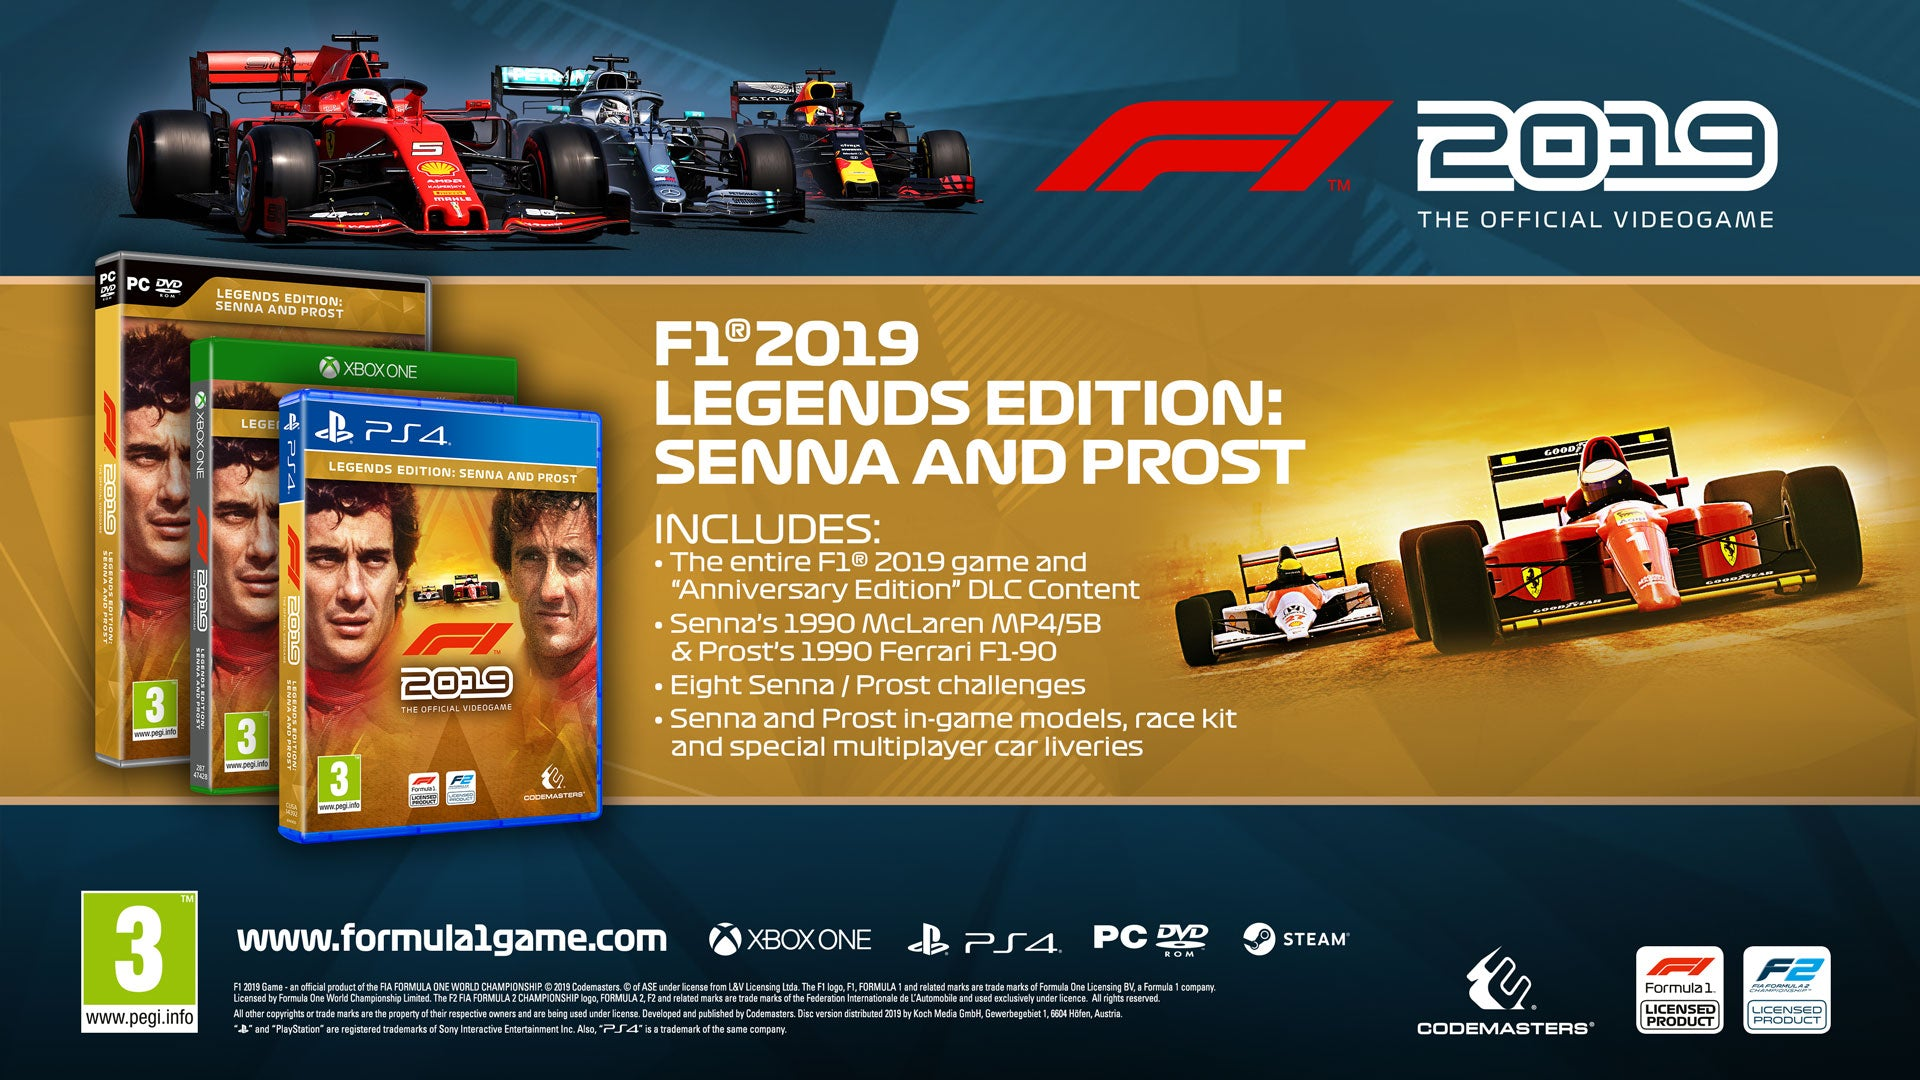 F1 2019 - Legends Edition